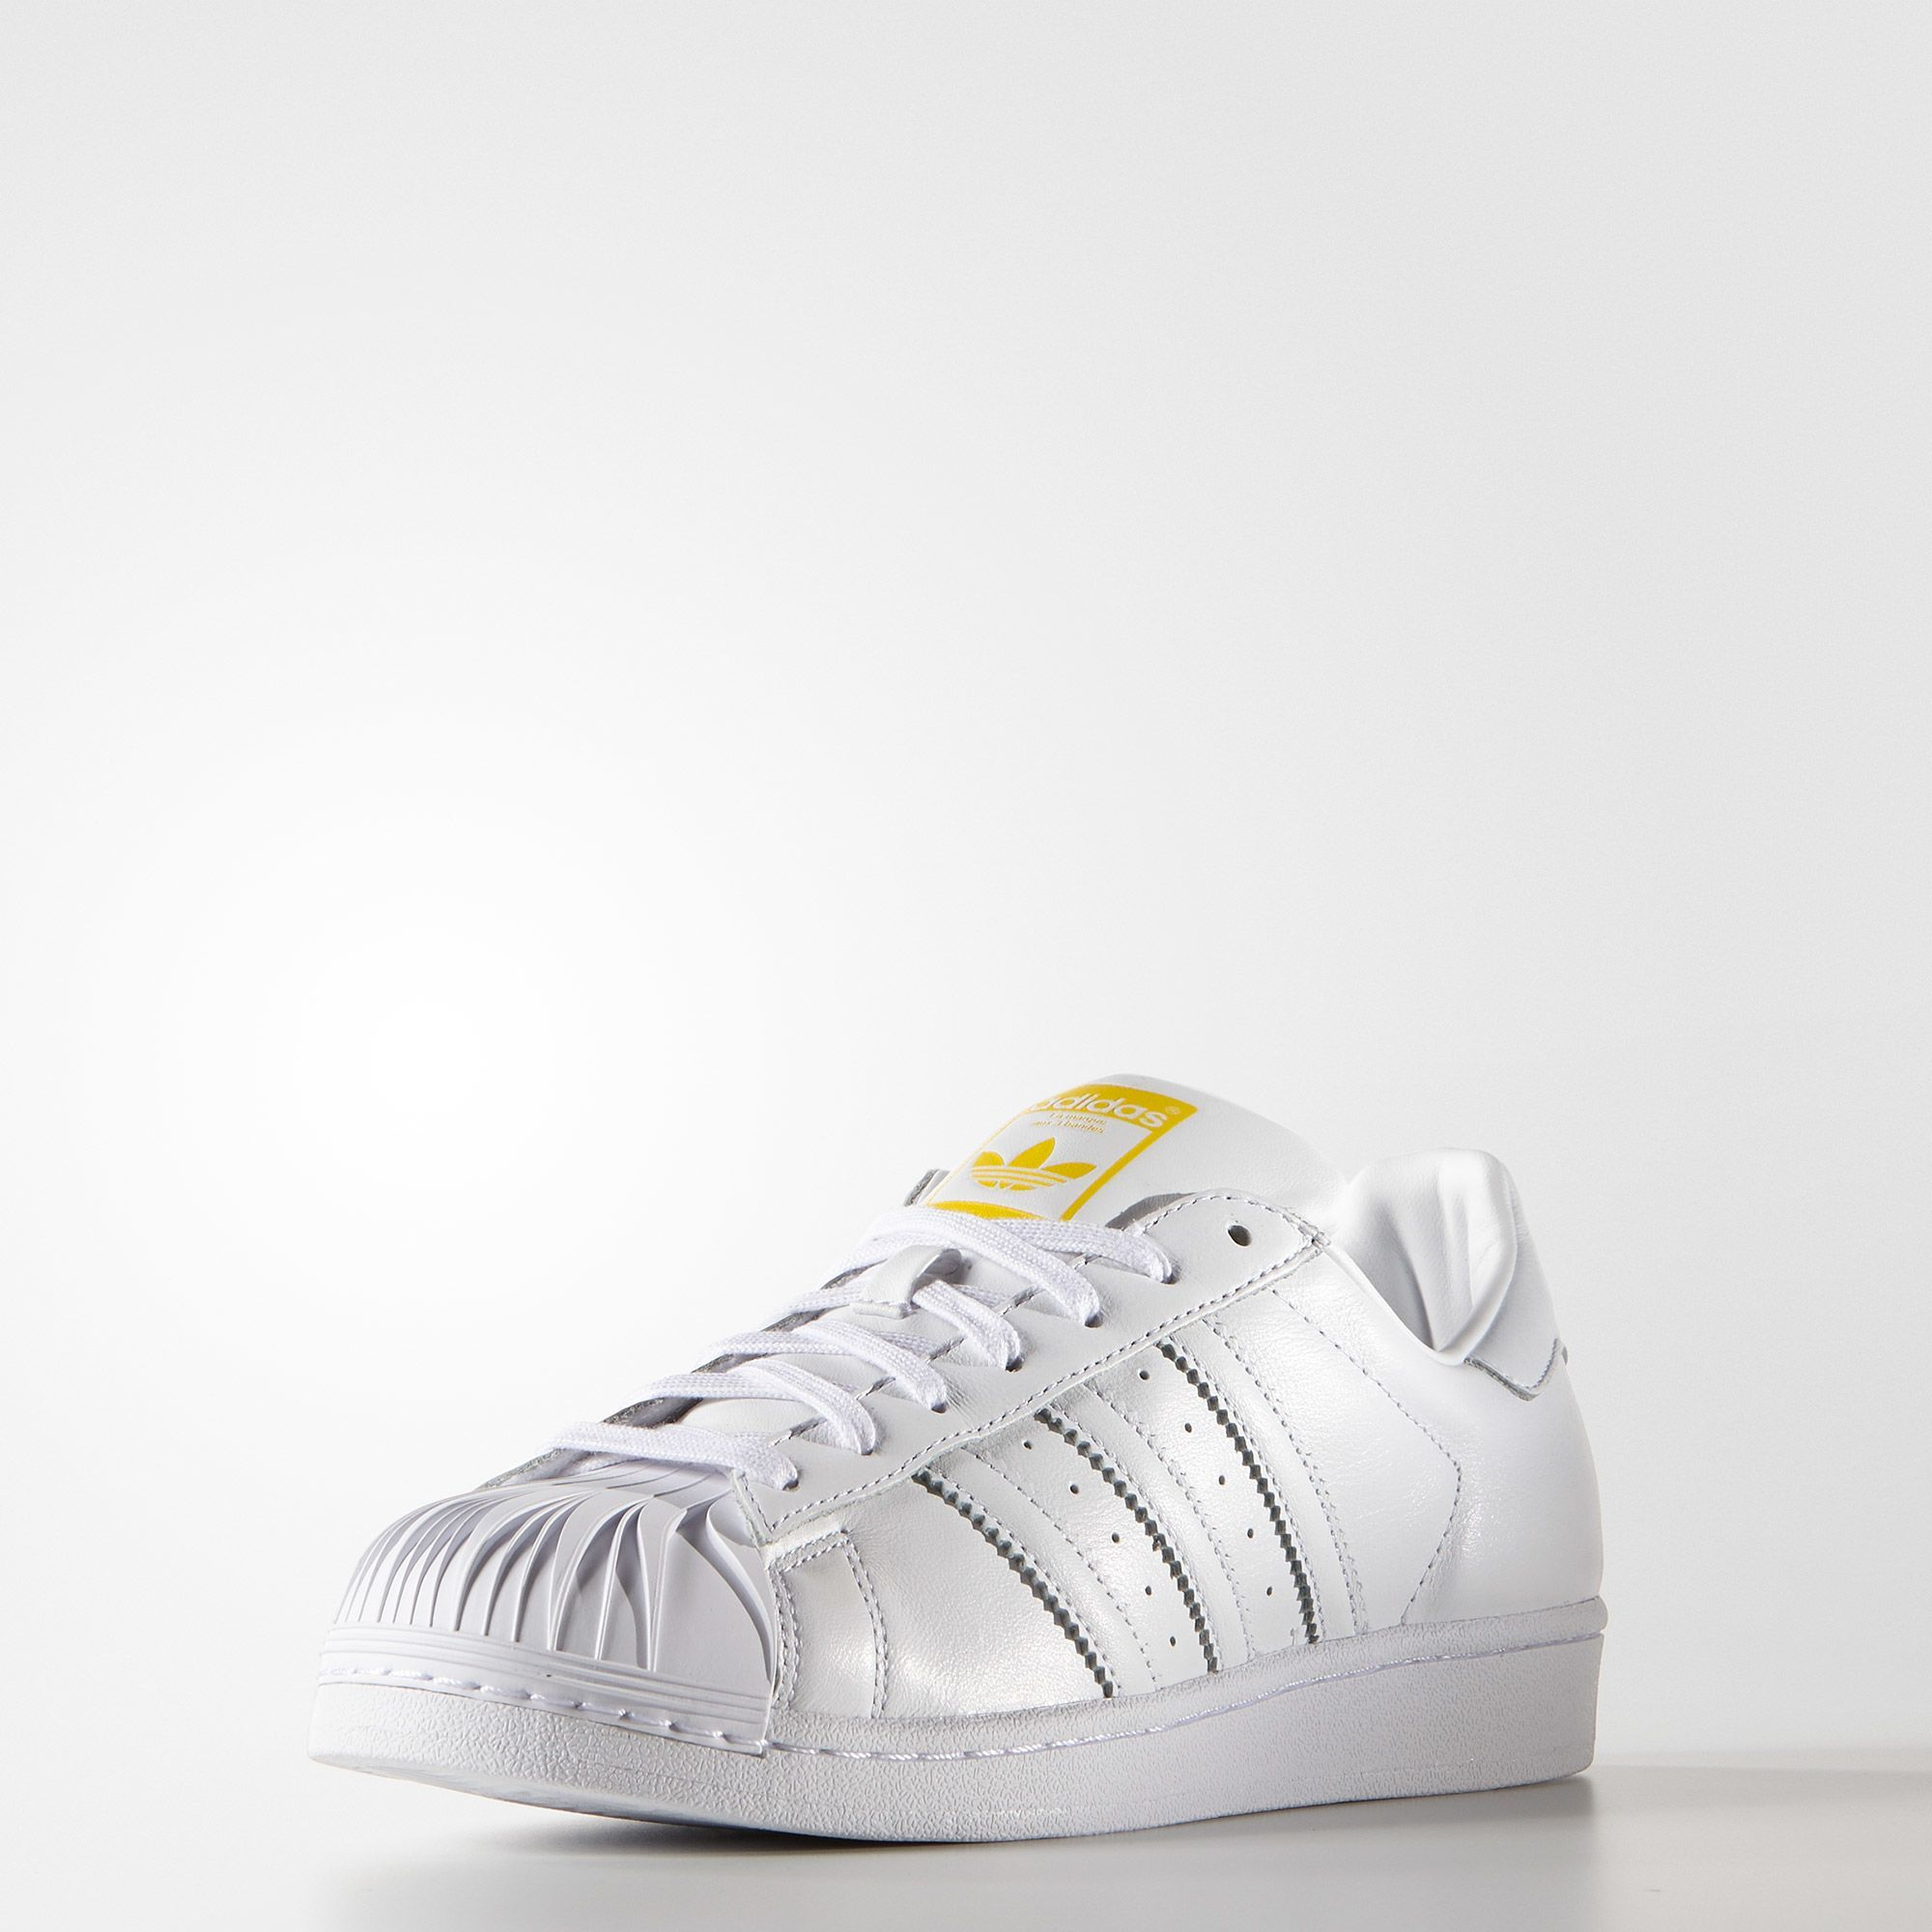 Newest Adidas Originals Superstar Pharrell Supershell M White Mens Trainers Outlet UK0118